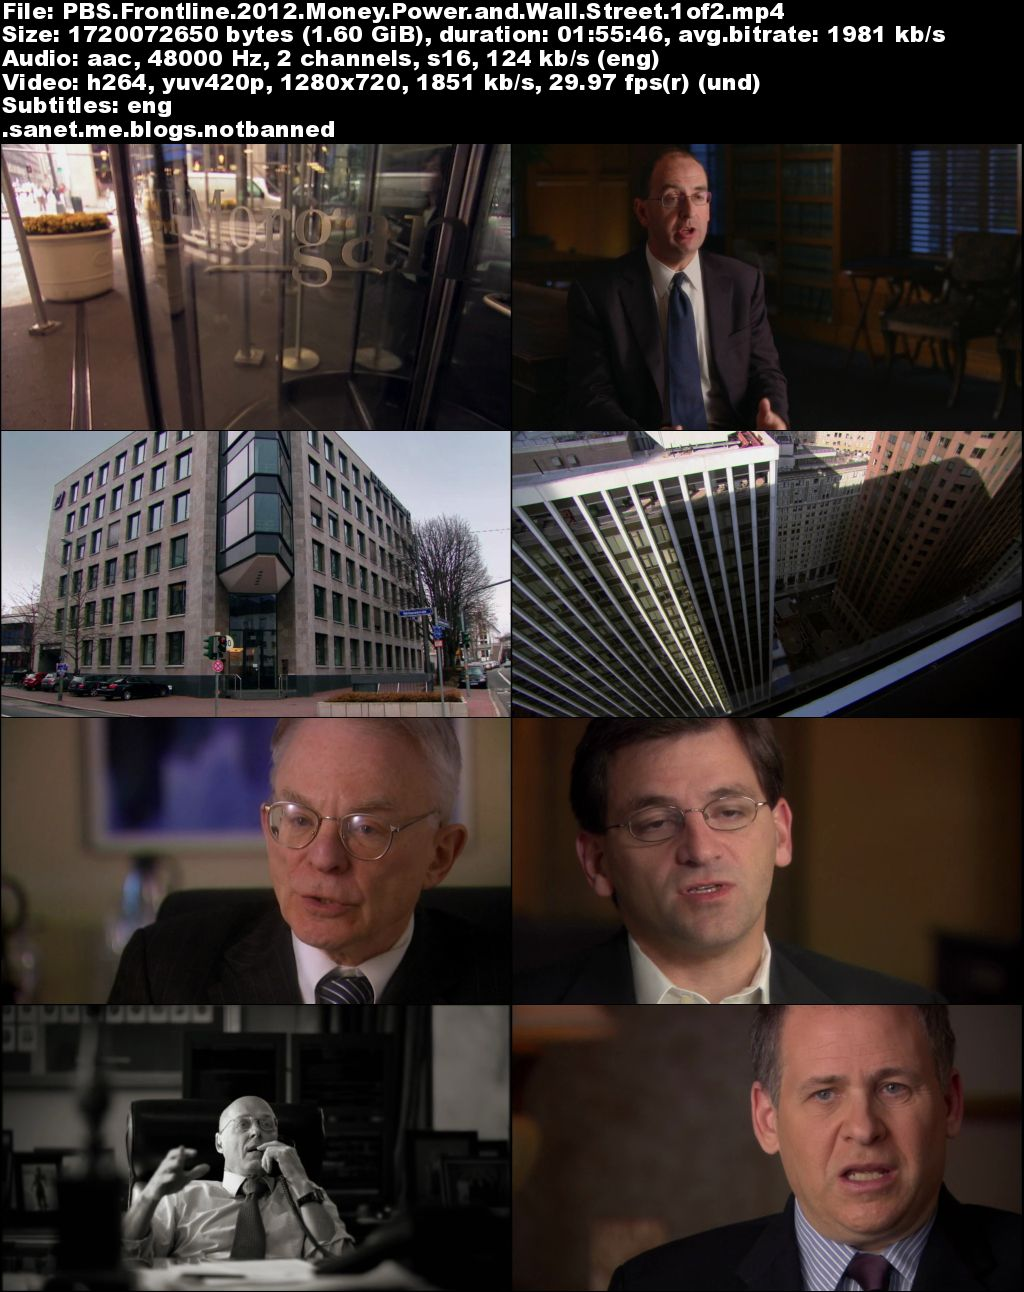 money power wall street Money, power and wall street: part two how us leaders struggled to respond to a financial crisis that caught them by surprise watch your shows many ways.